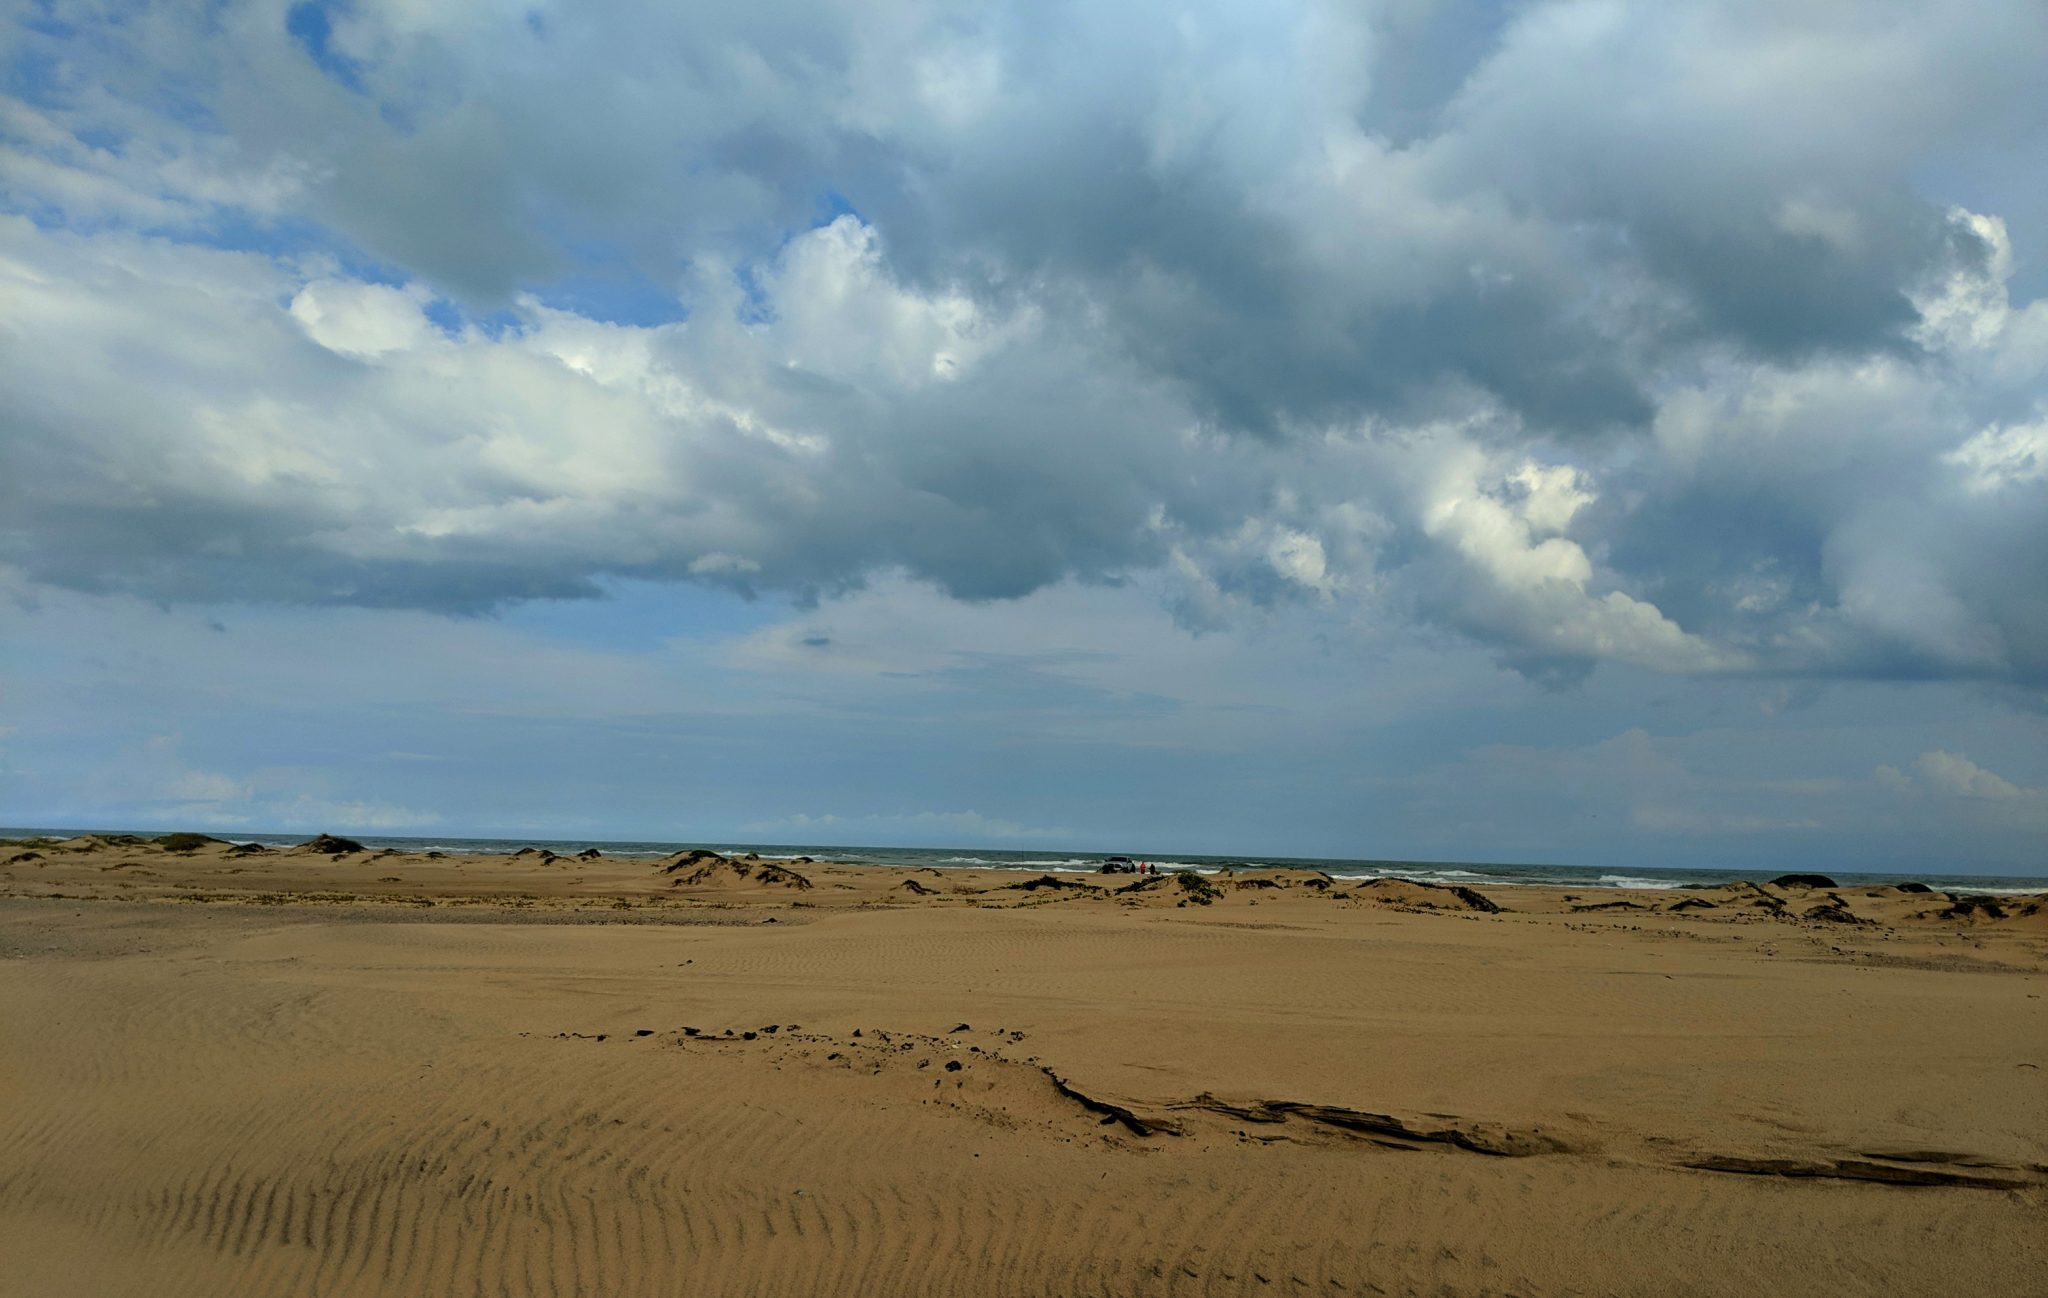 The beach on South Padre Island Texas